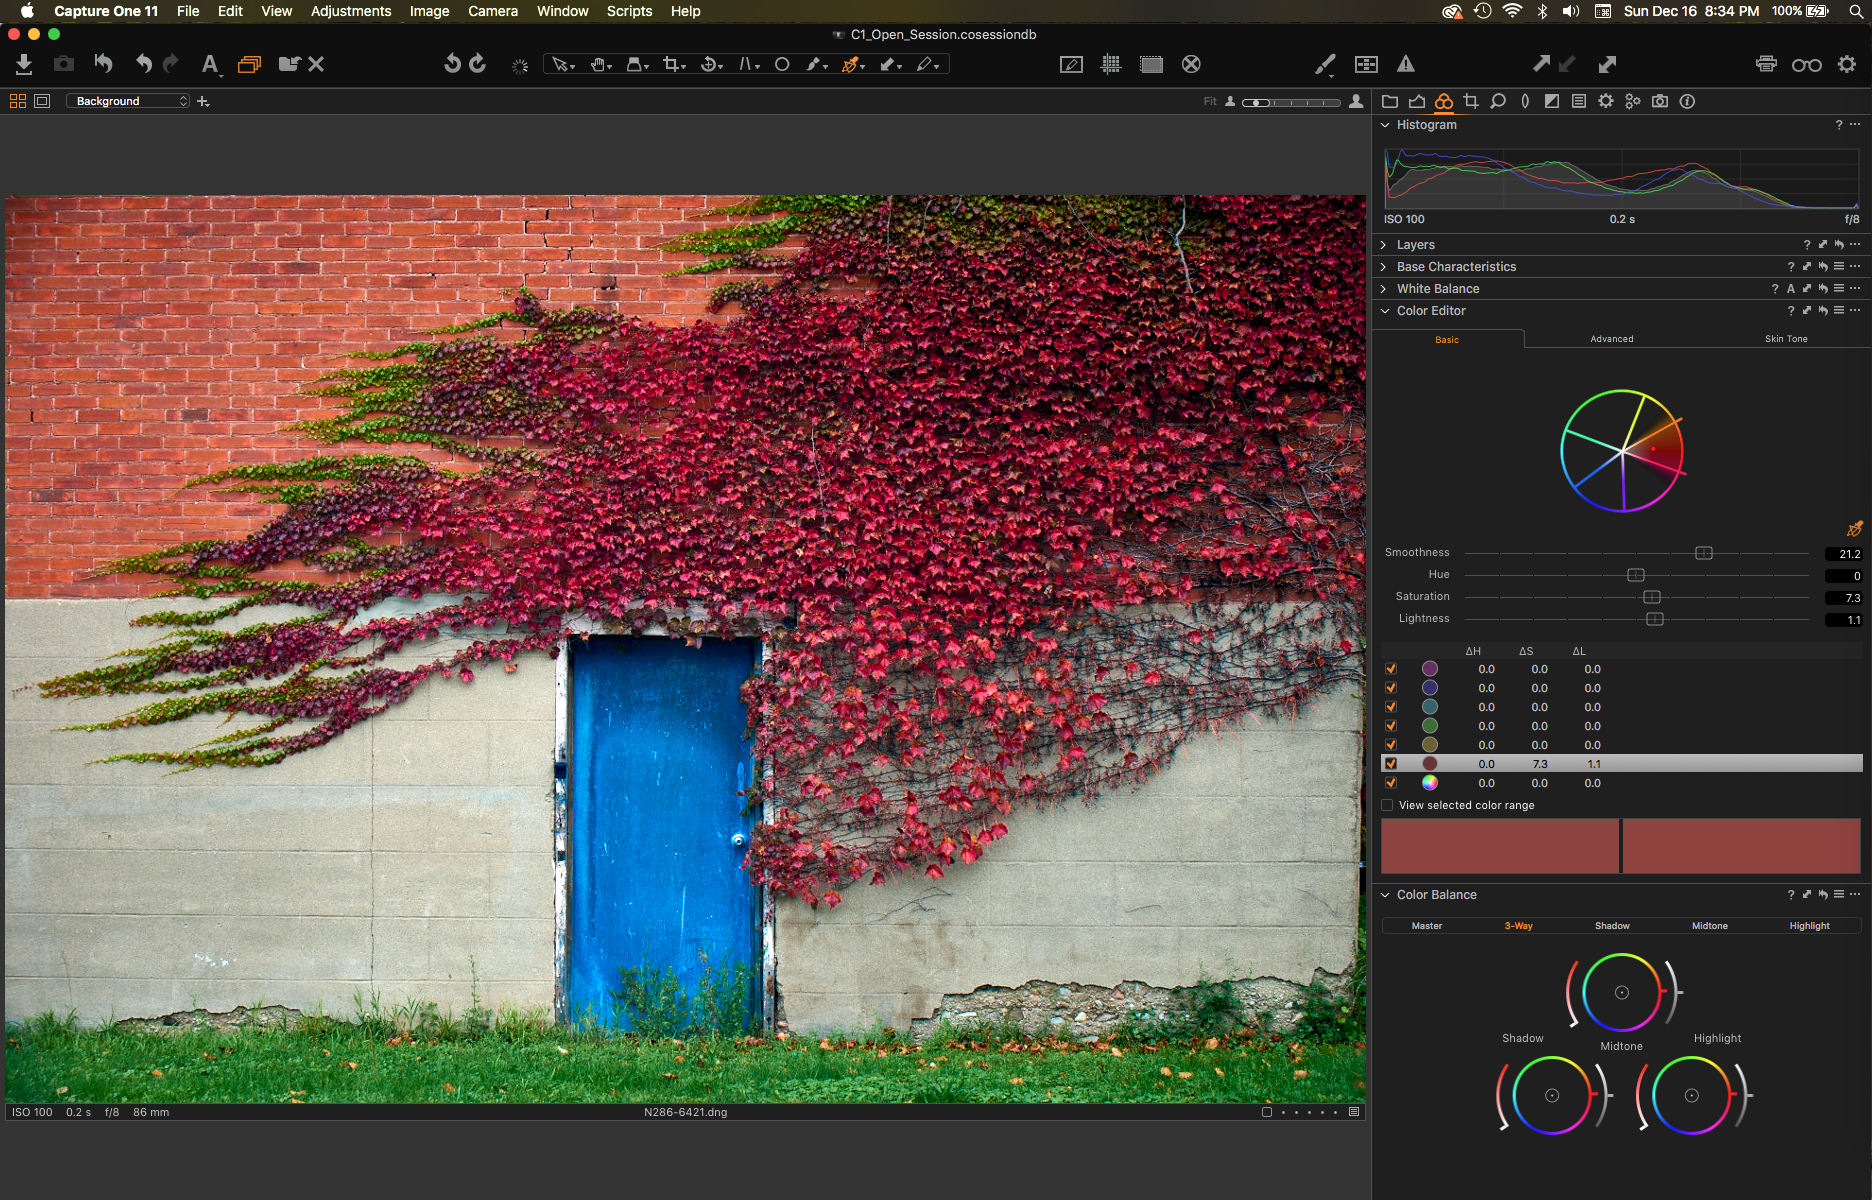 Capture One Pro, colour editing tools